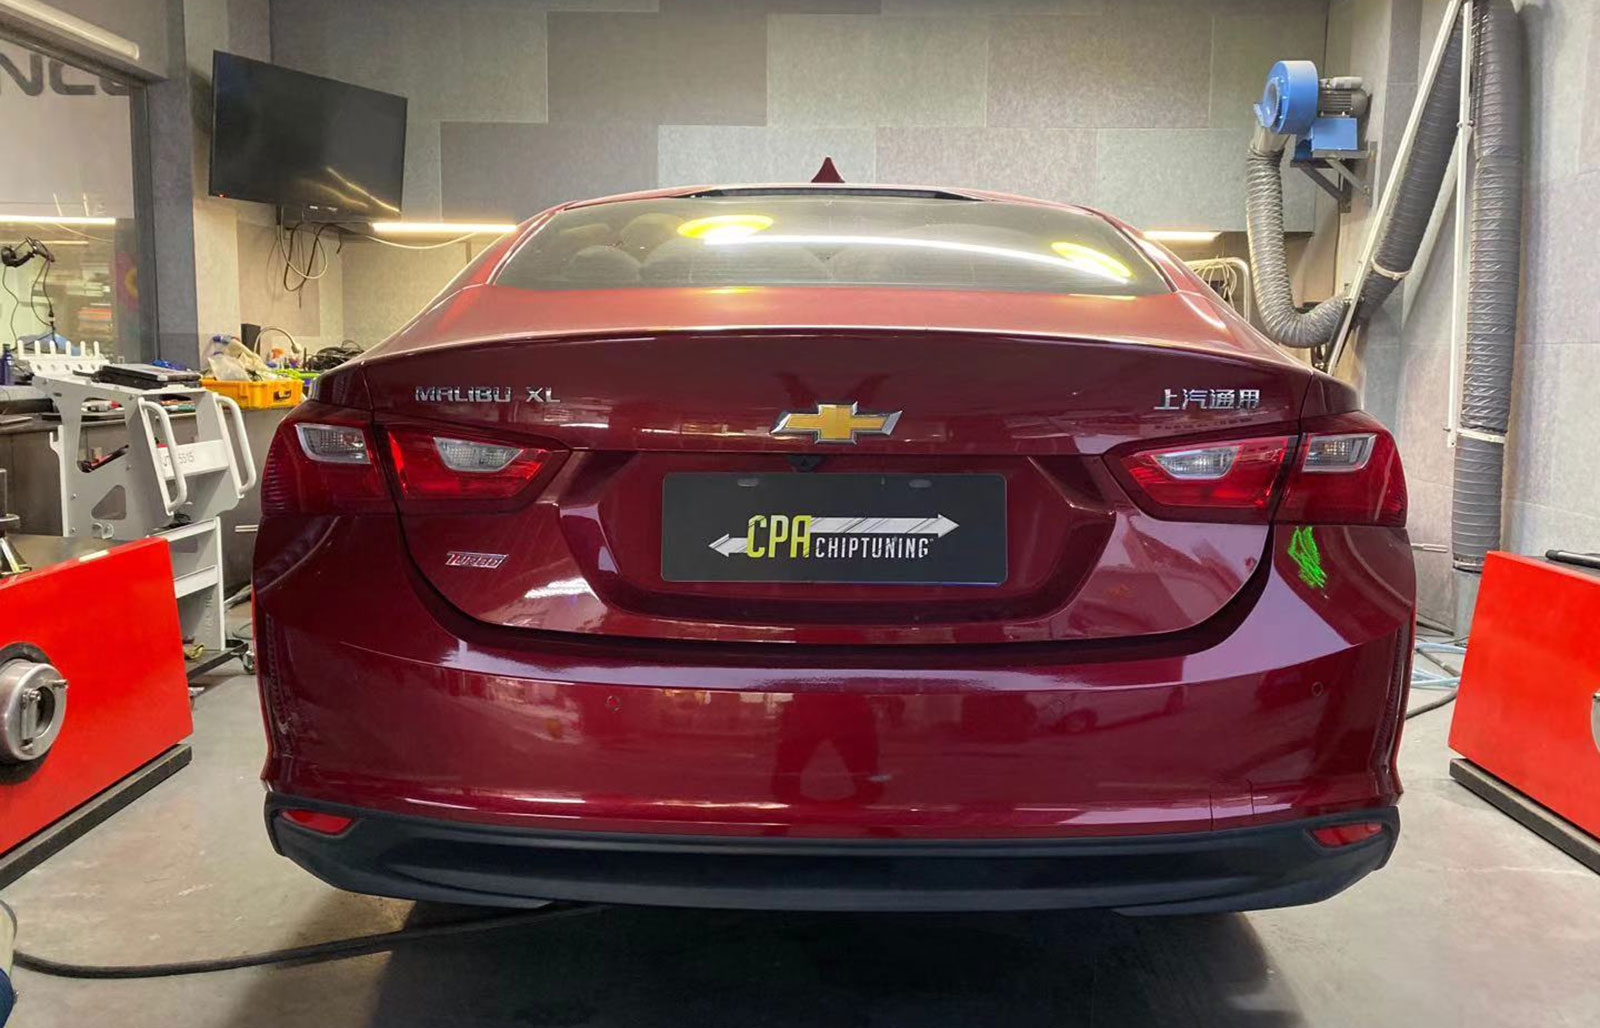 Chevrolet Malibu (VI) XL 1.5 chiptuning